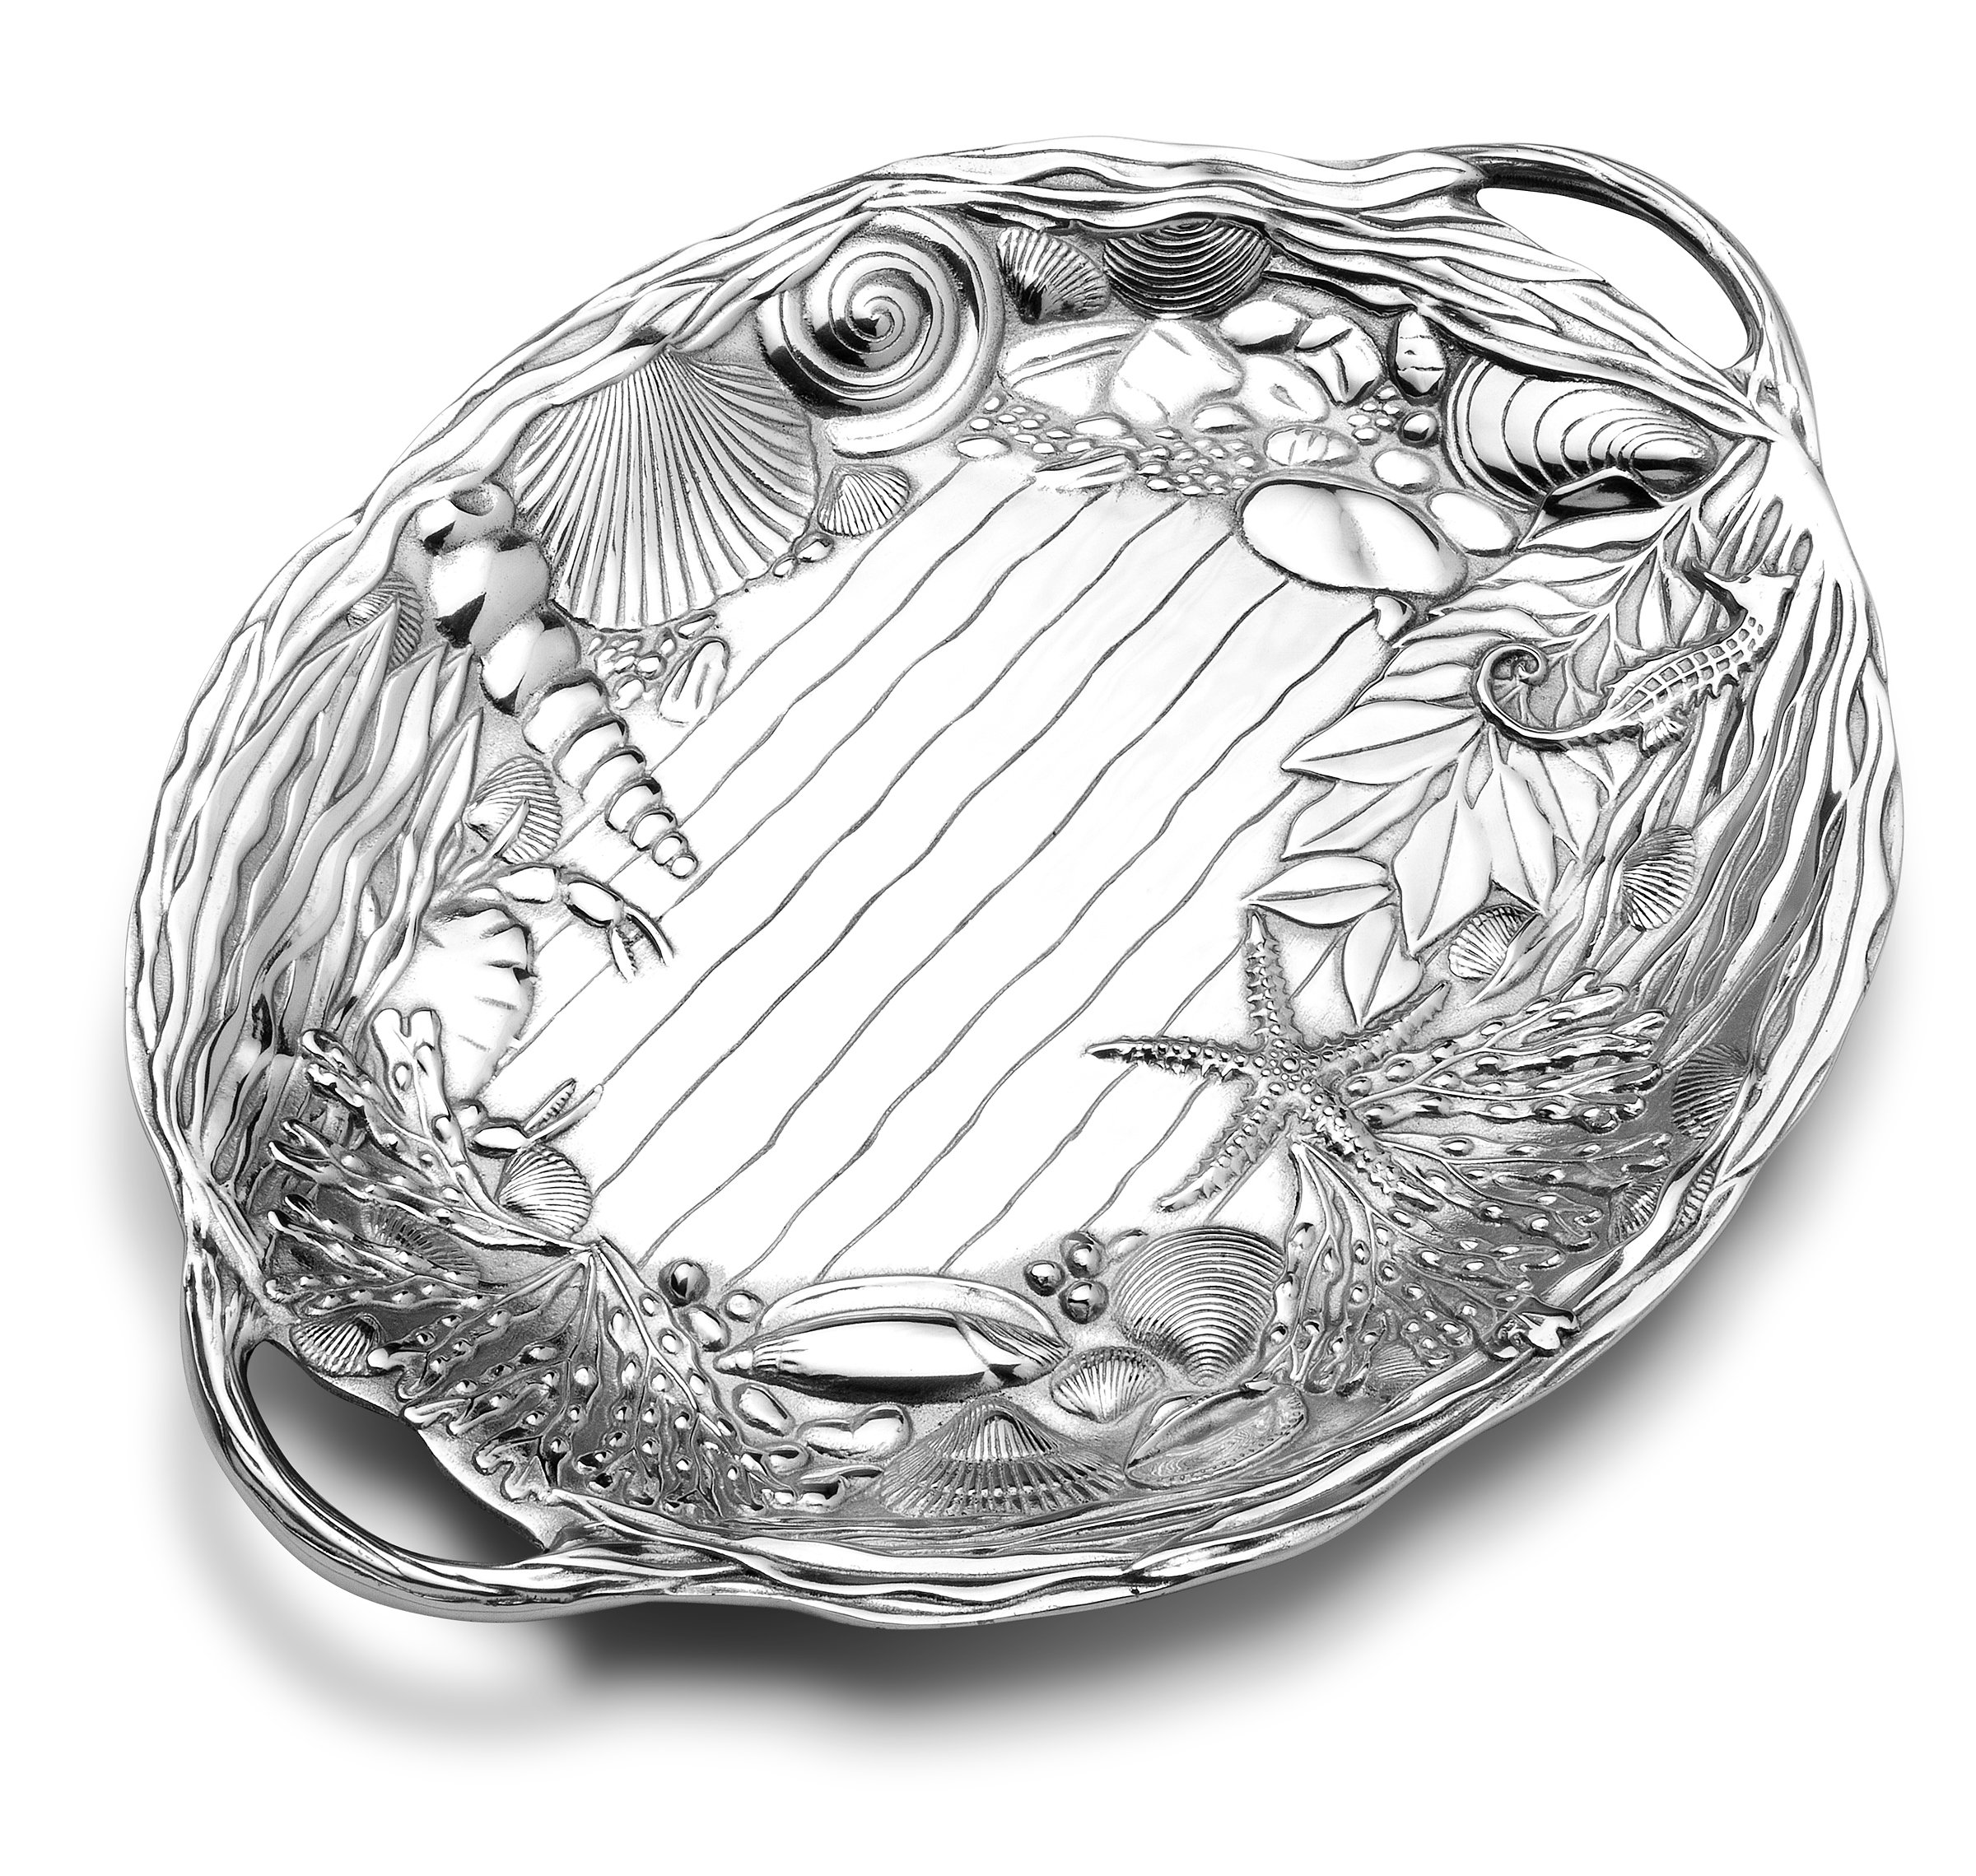 Wilton Armetale Sea Life Oval Tray with Handles, 16.75-Inch-by-13.75-Inch